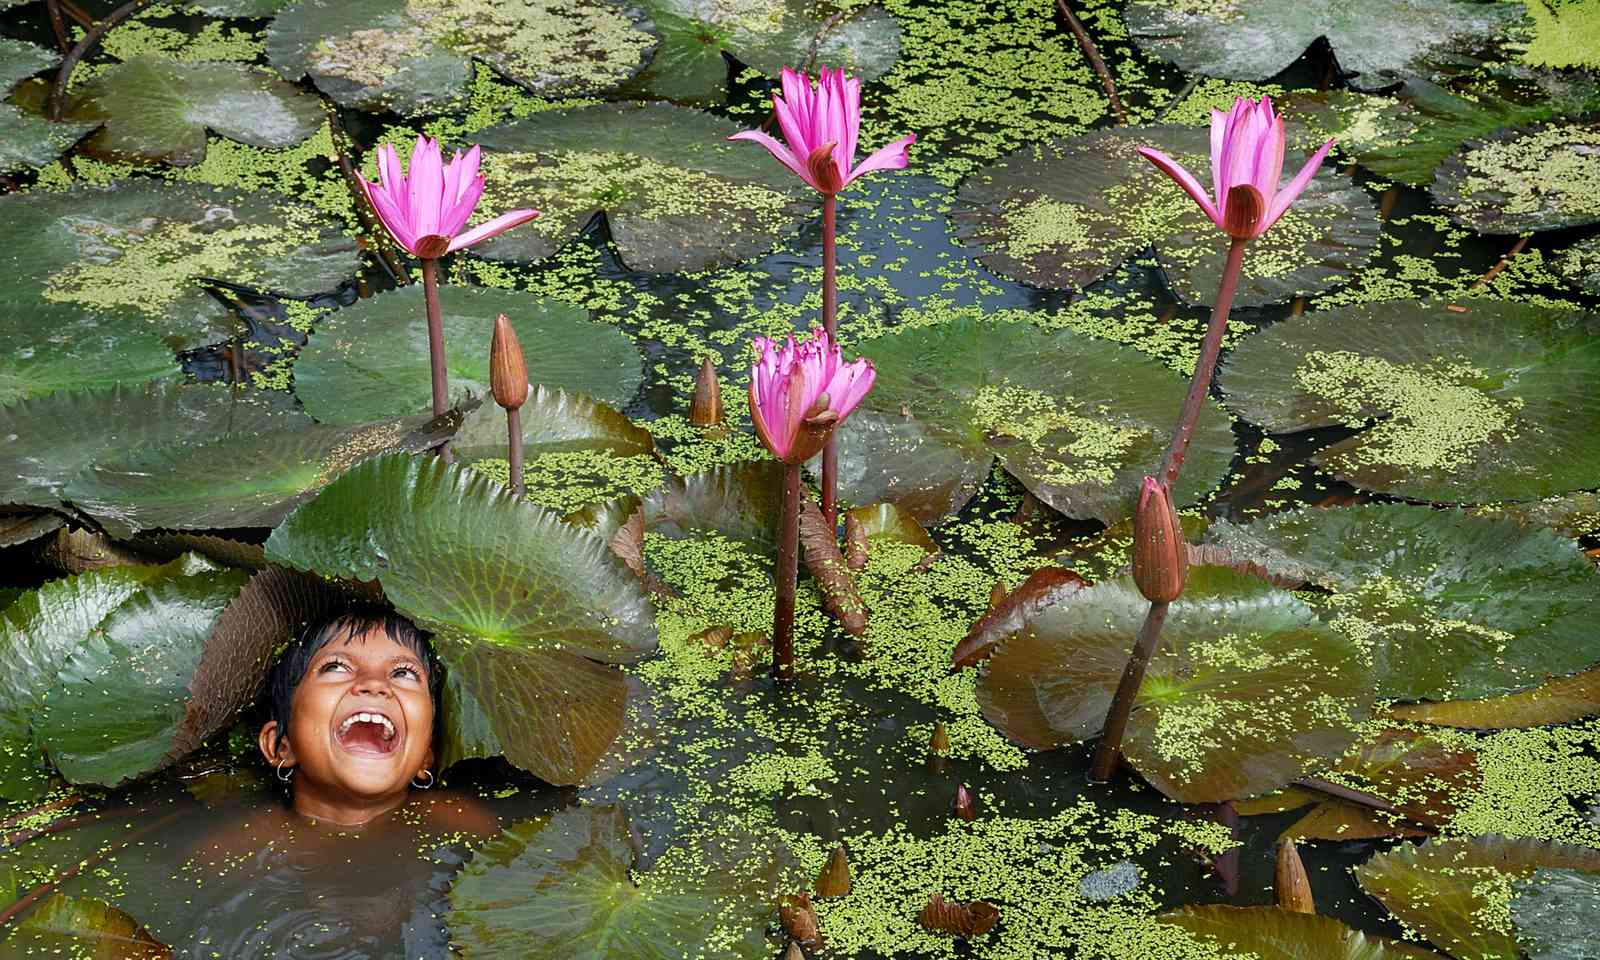 Young Indian boy swimming amongst lily pads (Dreamstime)